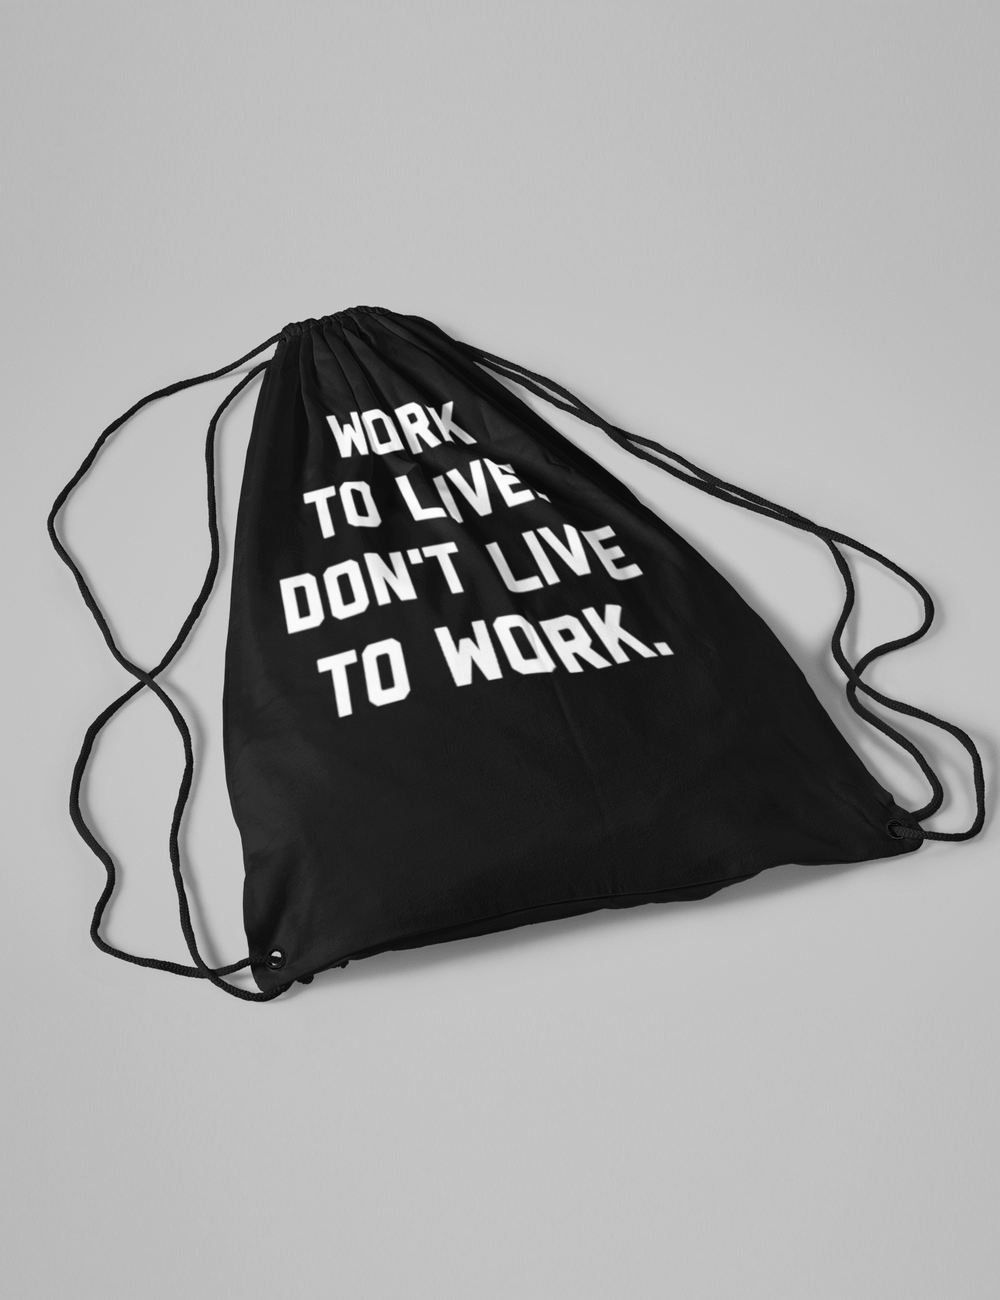 Work To Live Don't Live To Work Drawstring Bag